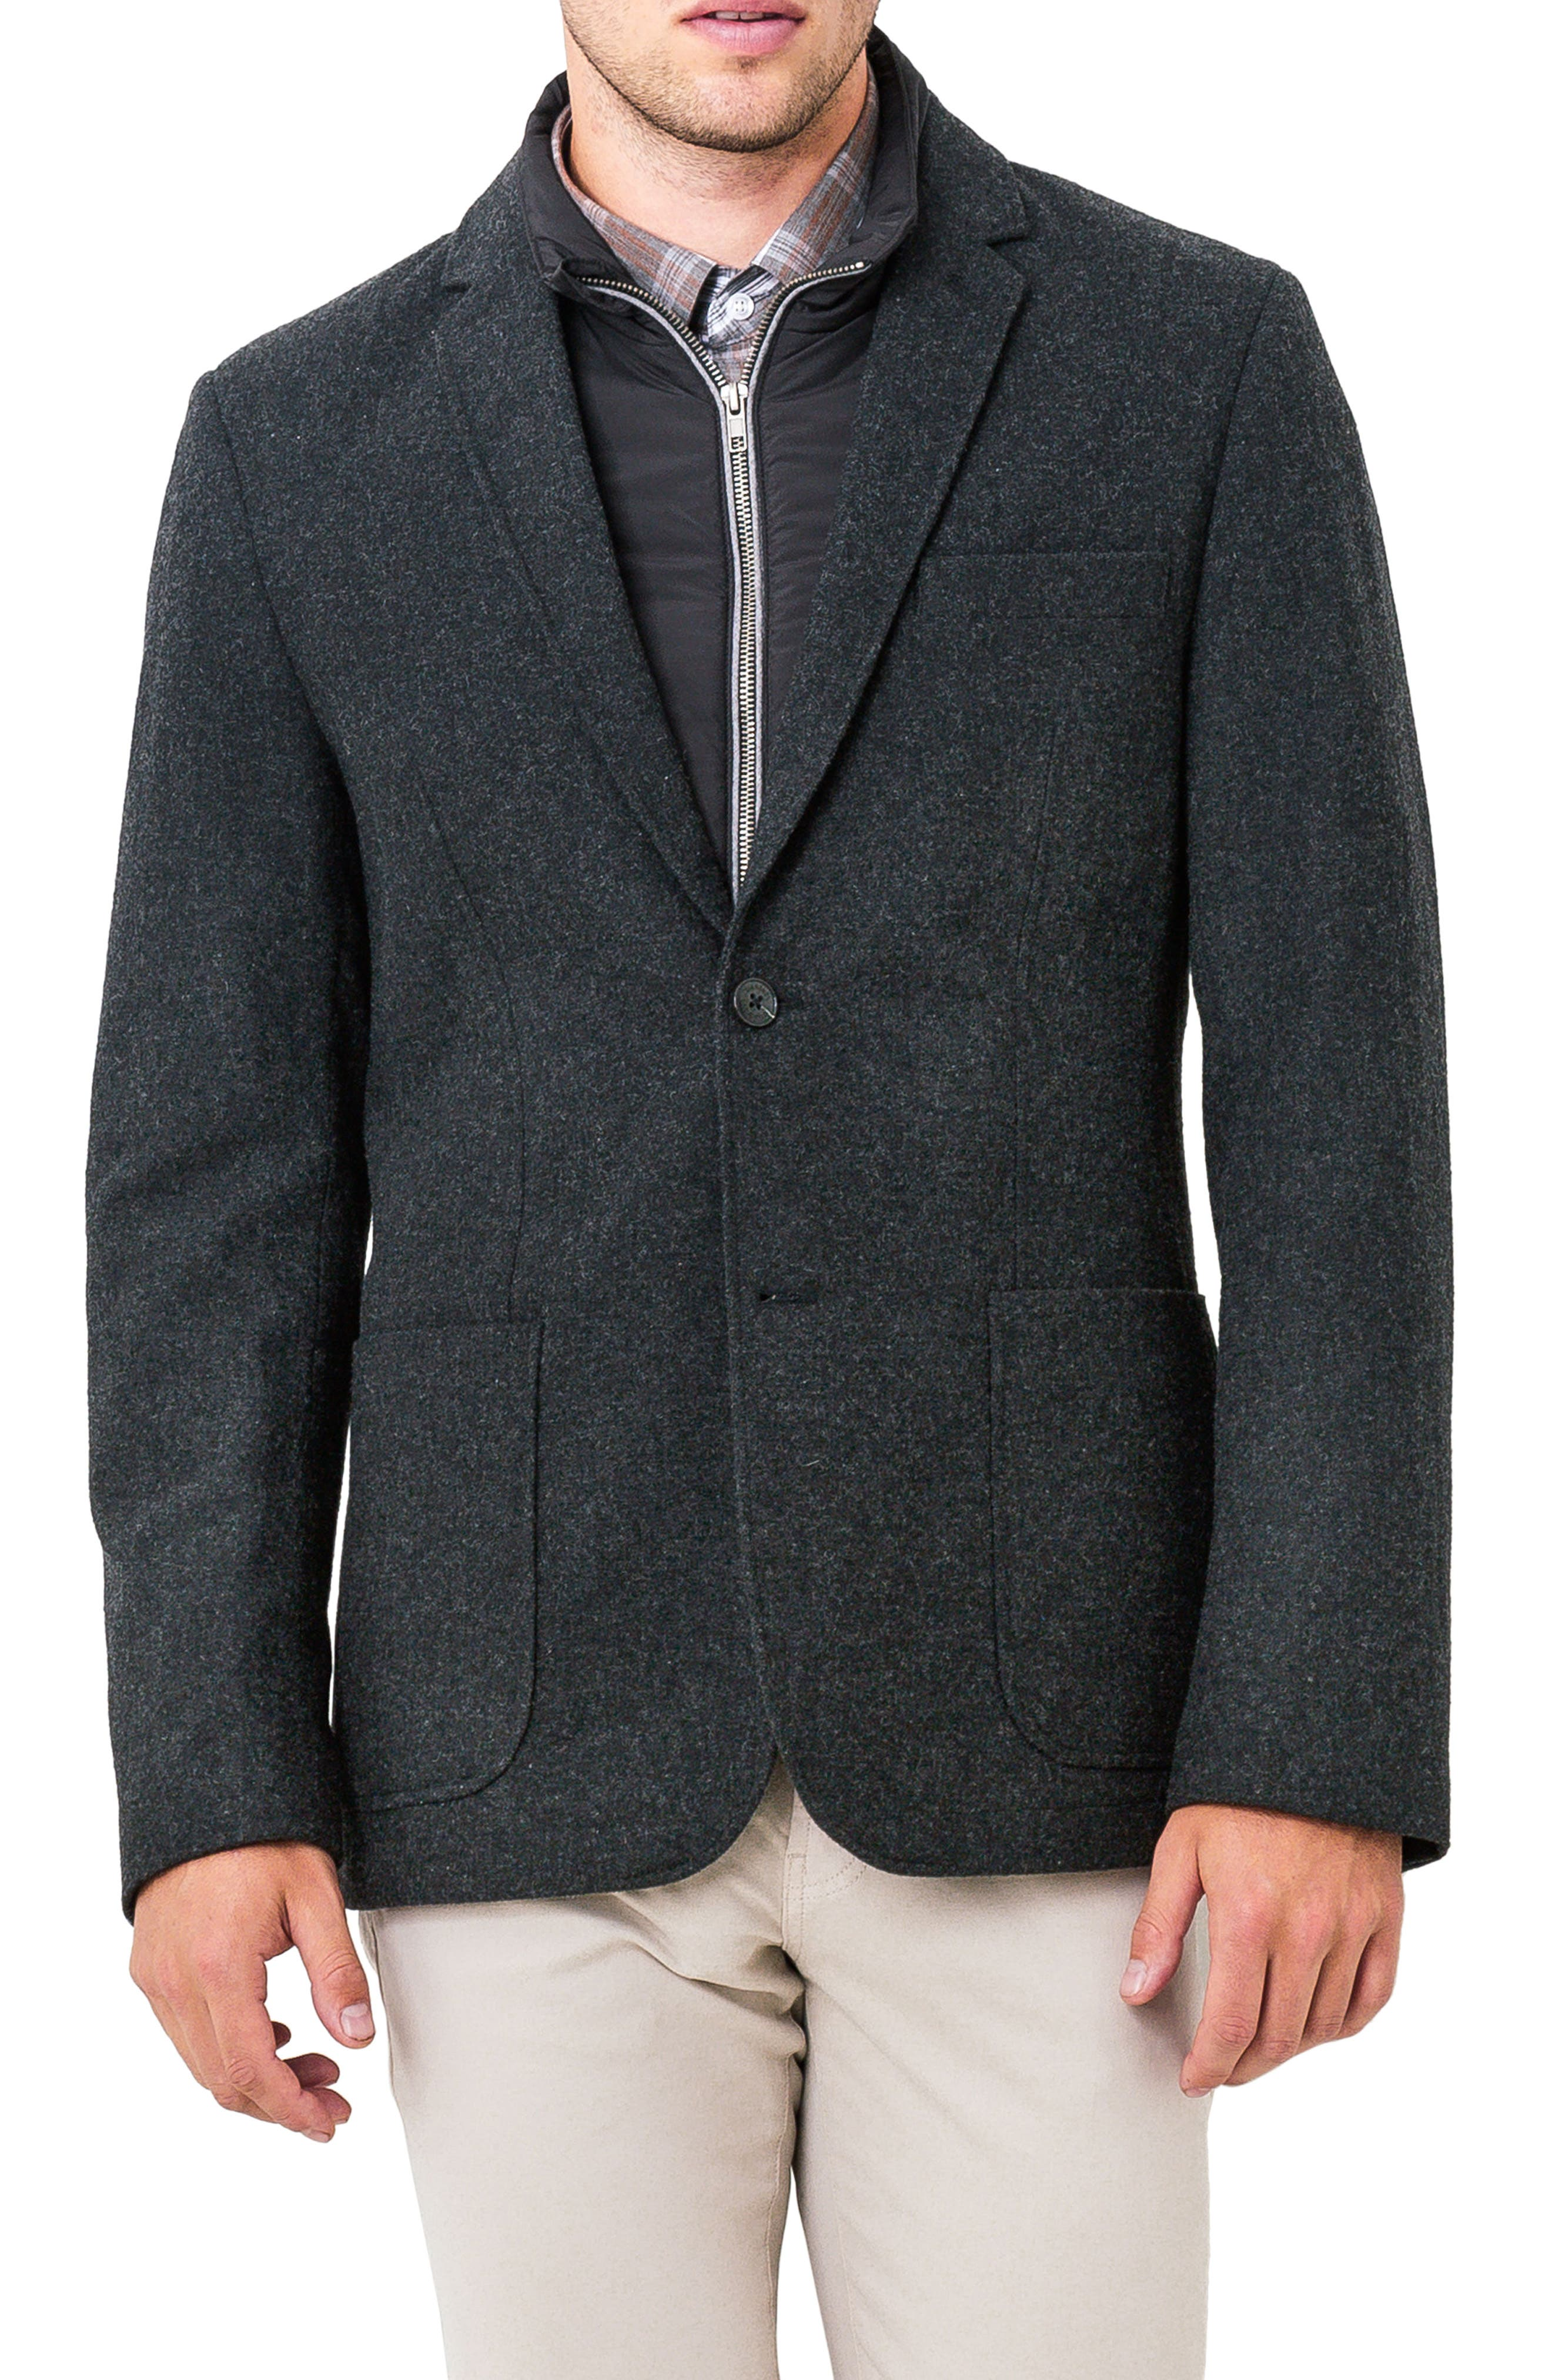 7 Diamonds Transit Casual Blazer